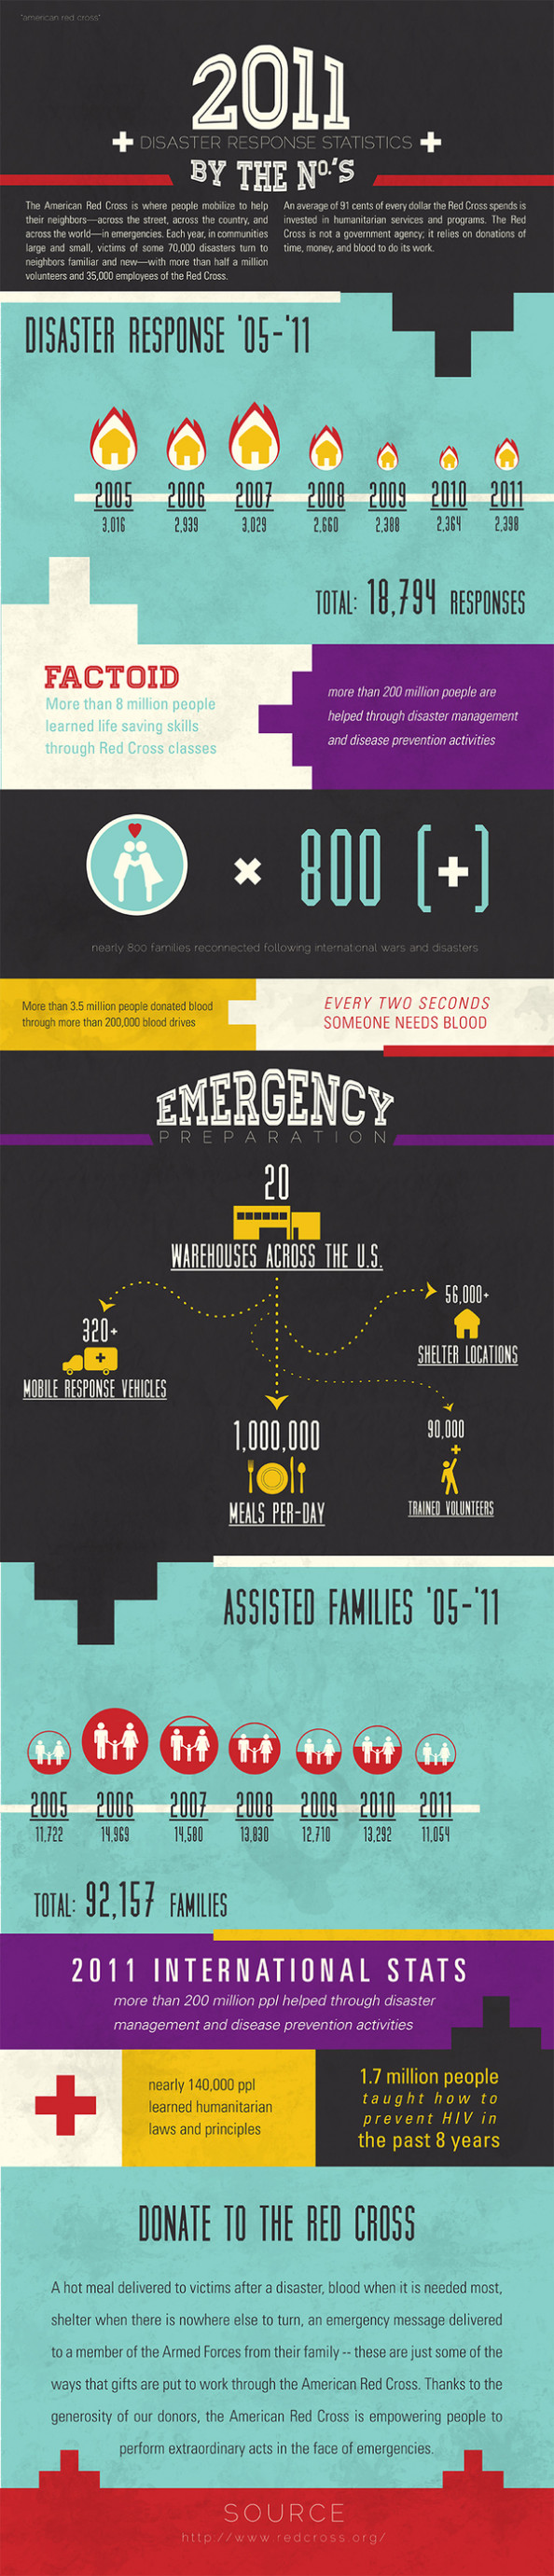 Red Cross: 2011 Disaster Response Statistics by the No.'s Infographic